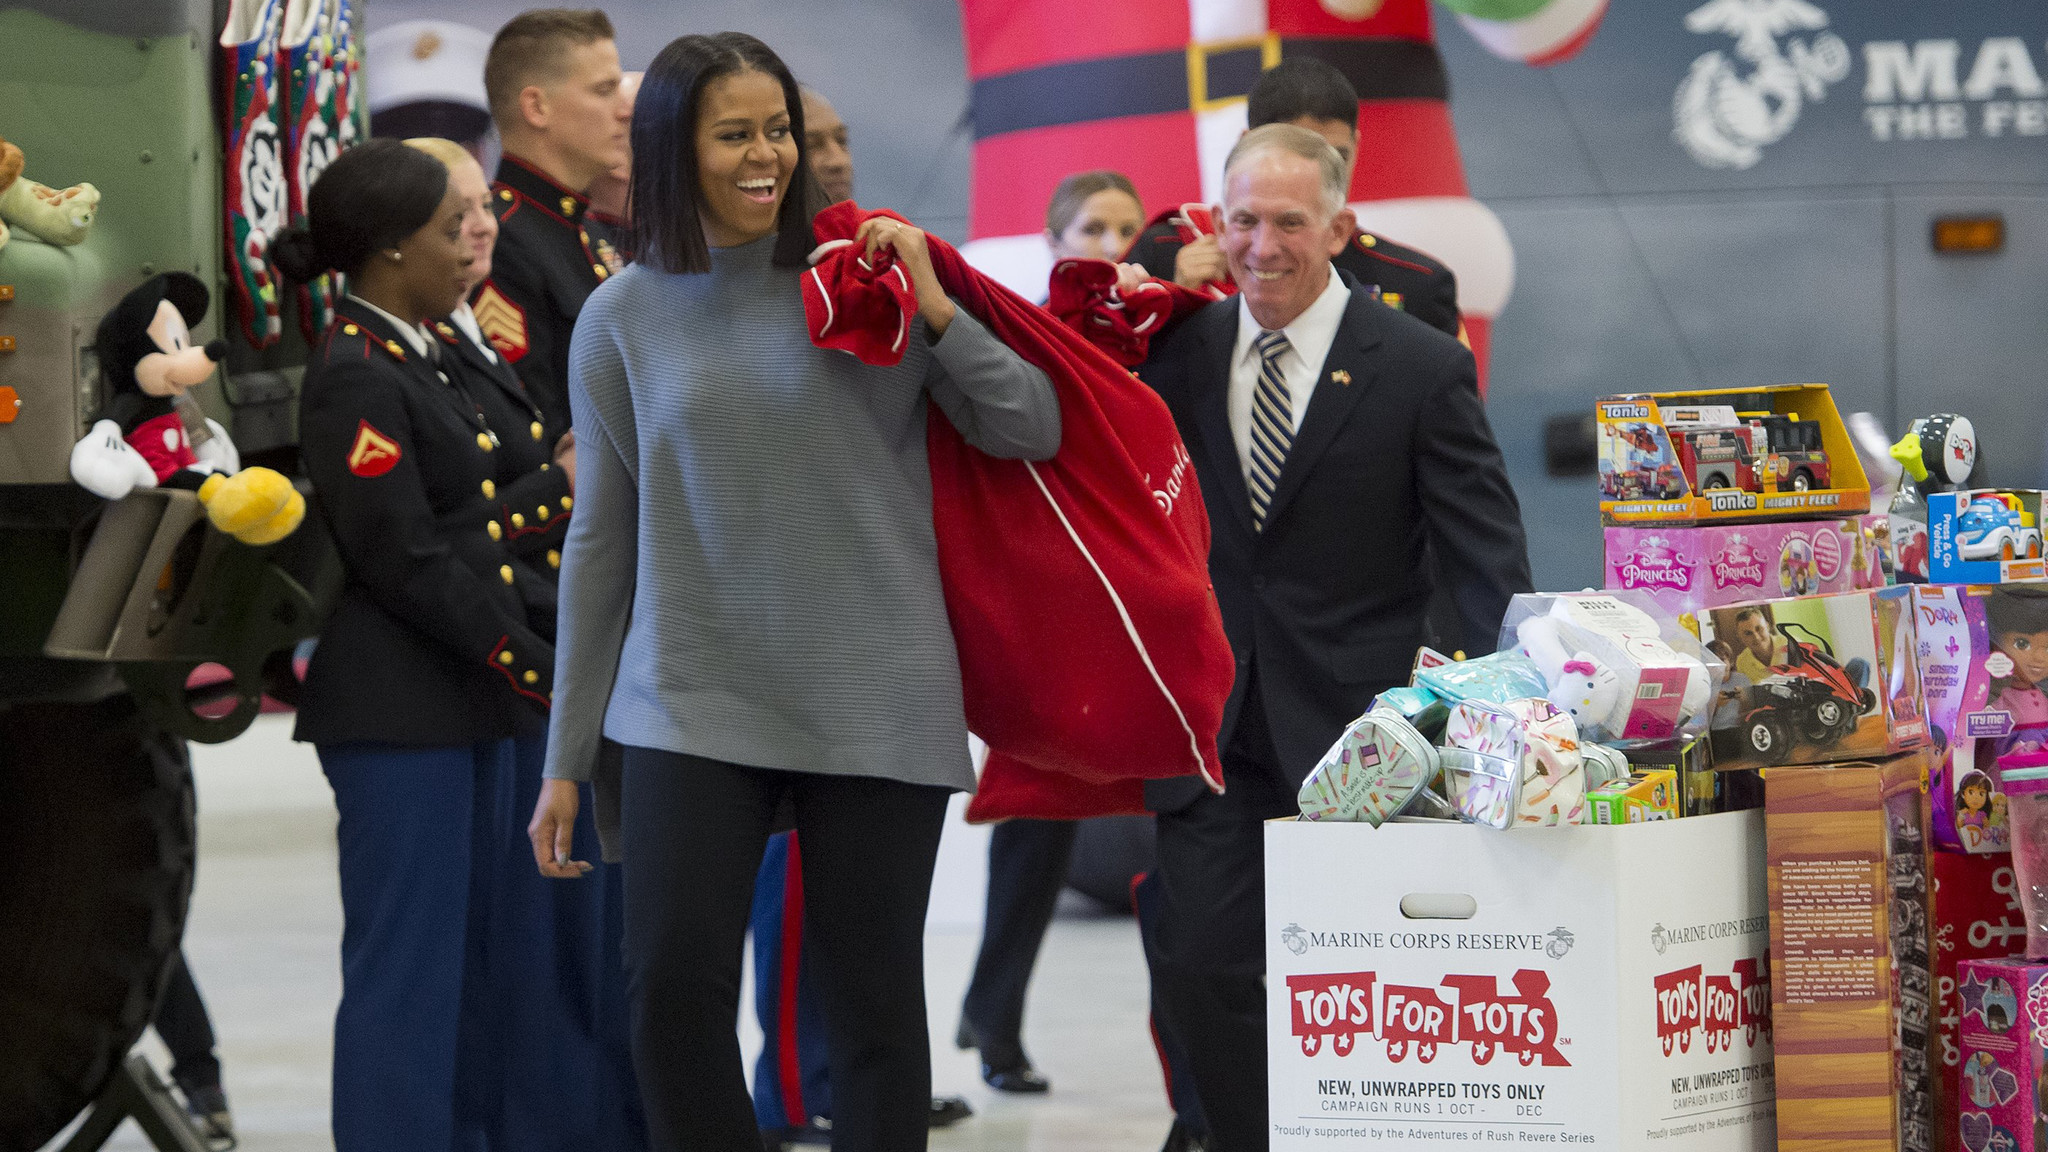 Toys For Tots Chicago : Find a toys for tots drop off with help from chicago s sim